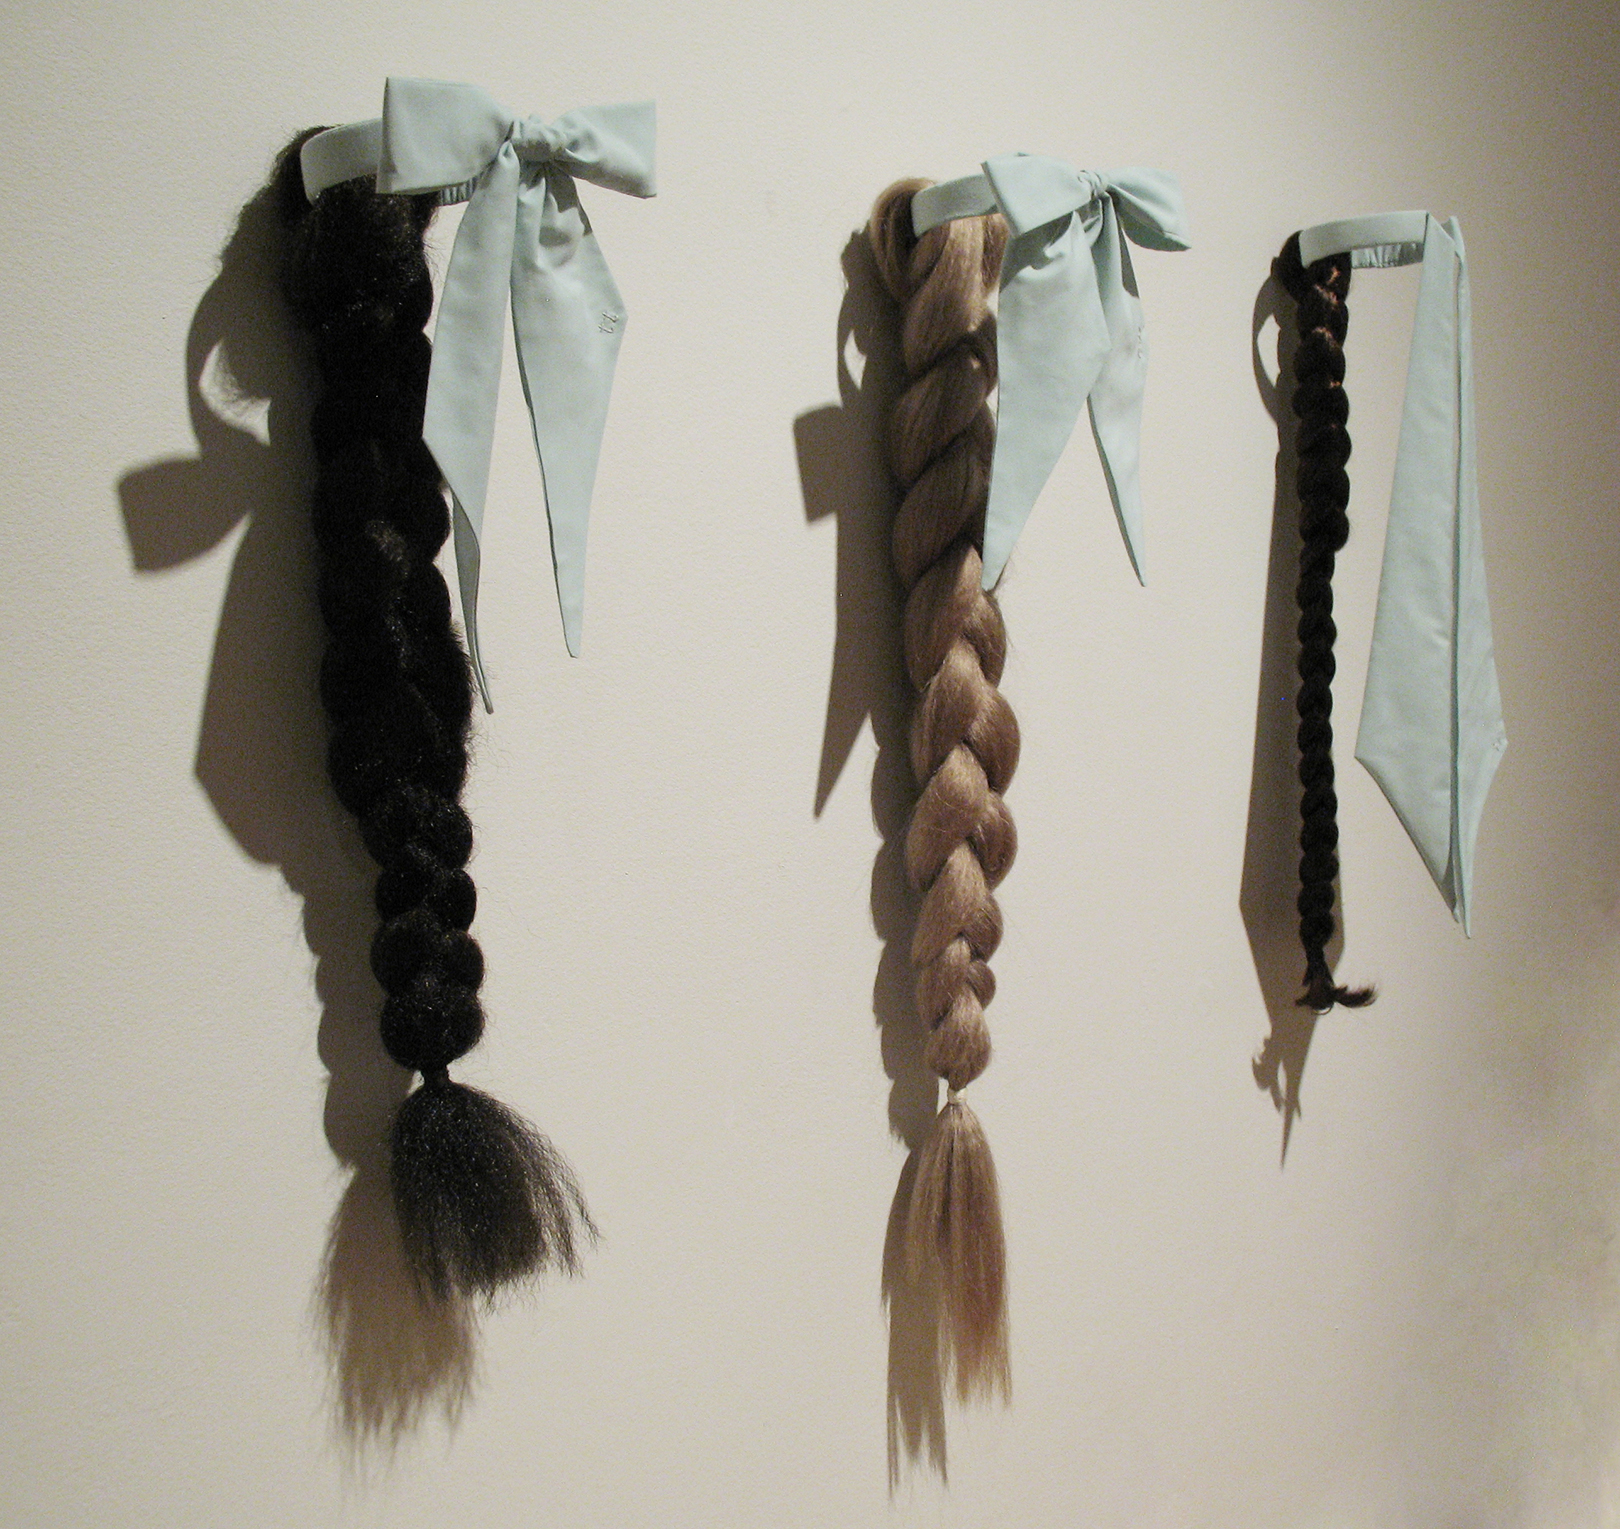 "For Both the Wearer and Their Partner  Hand-dyed fabric, synthetic hair, thread, and brass, 24"" x 7"" x 7"", 2011"